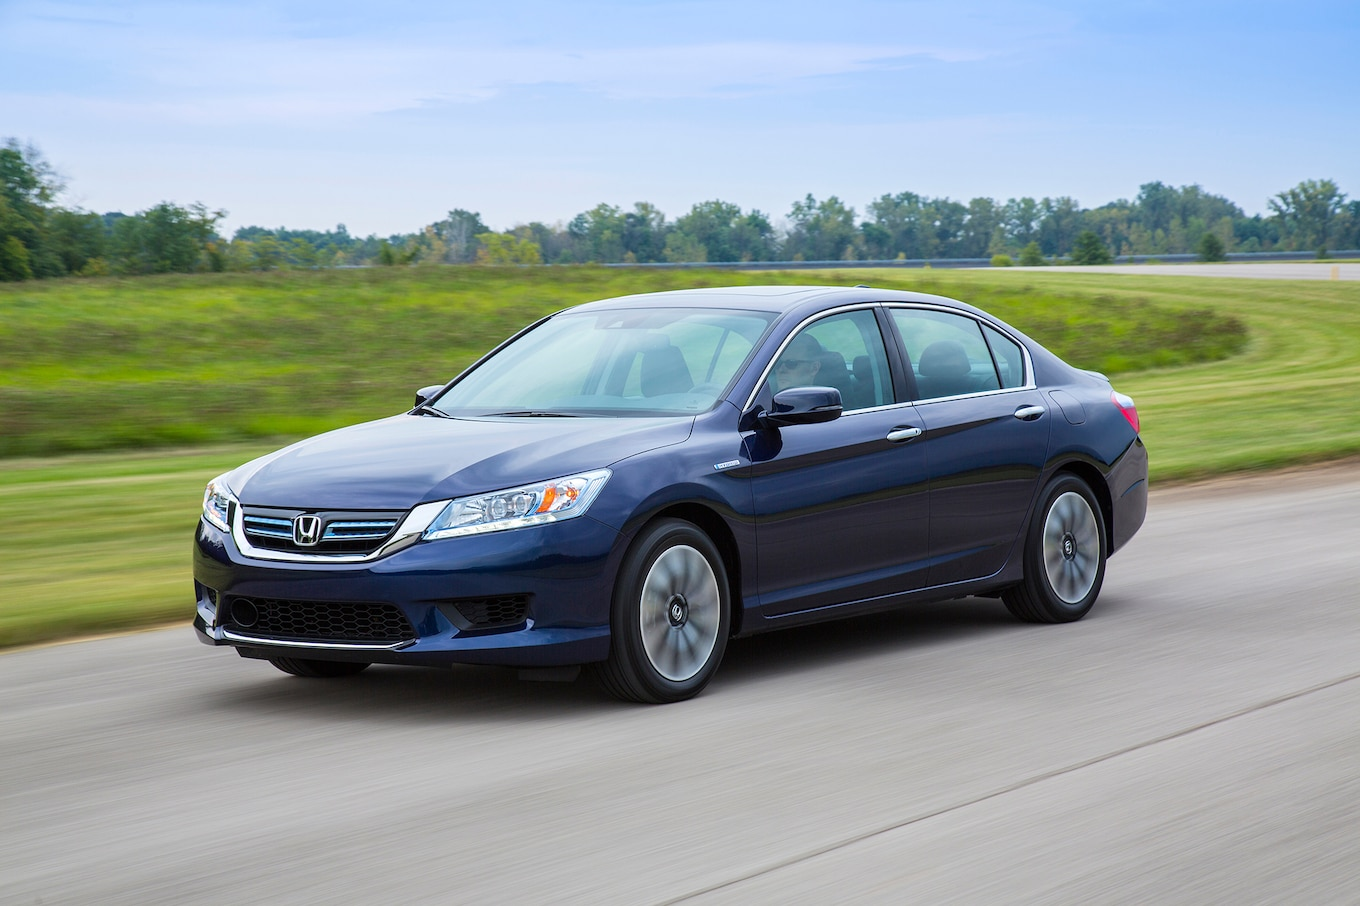 hight resolution of 2014 accord hybrid touring